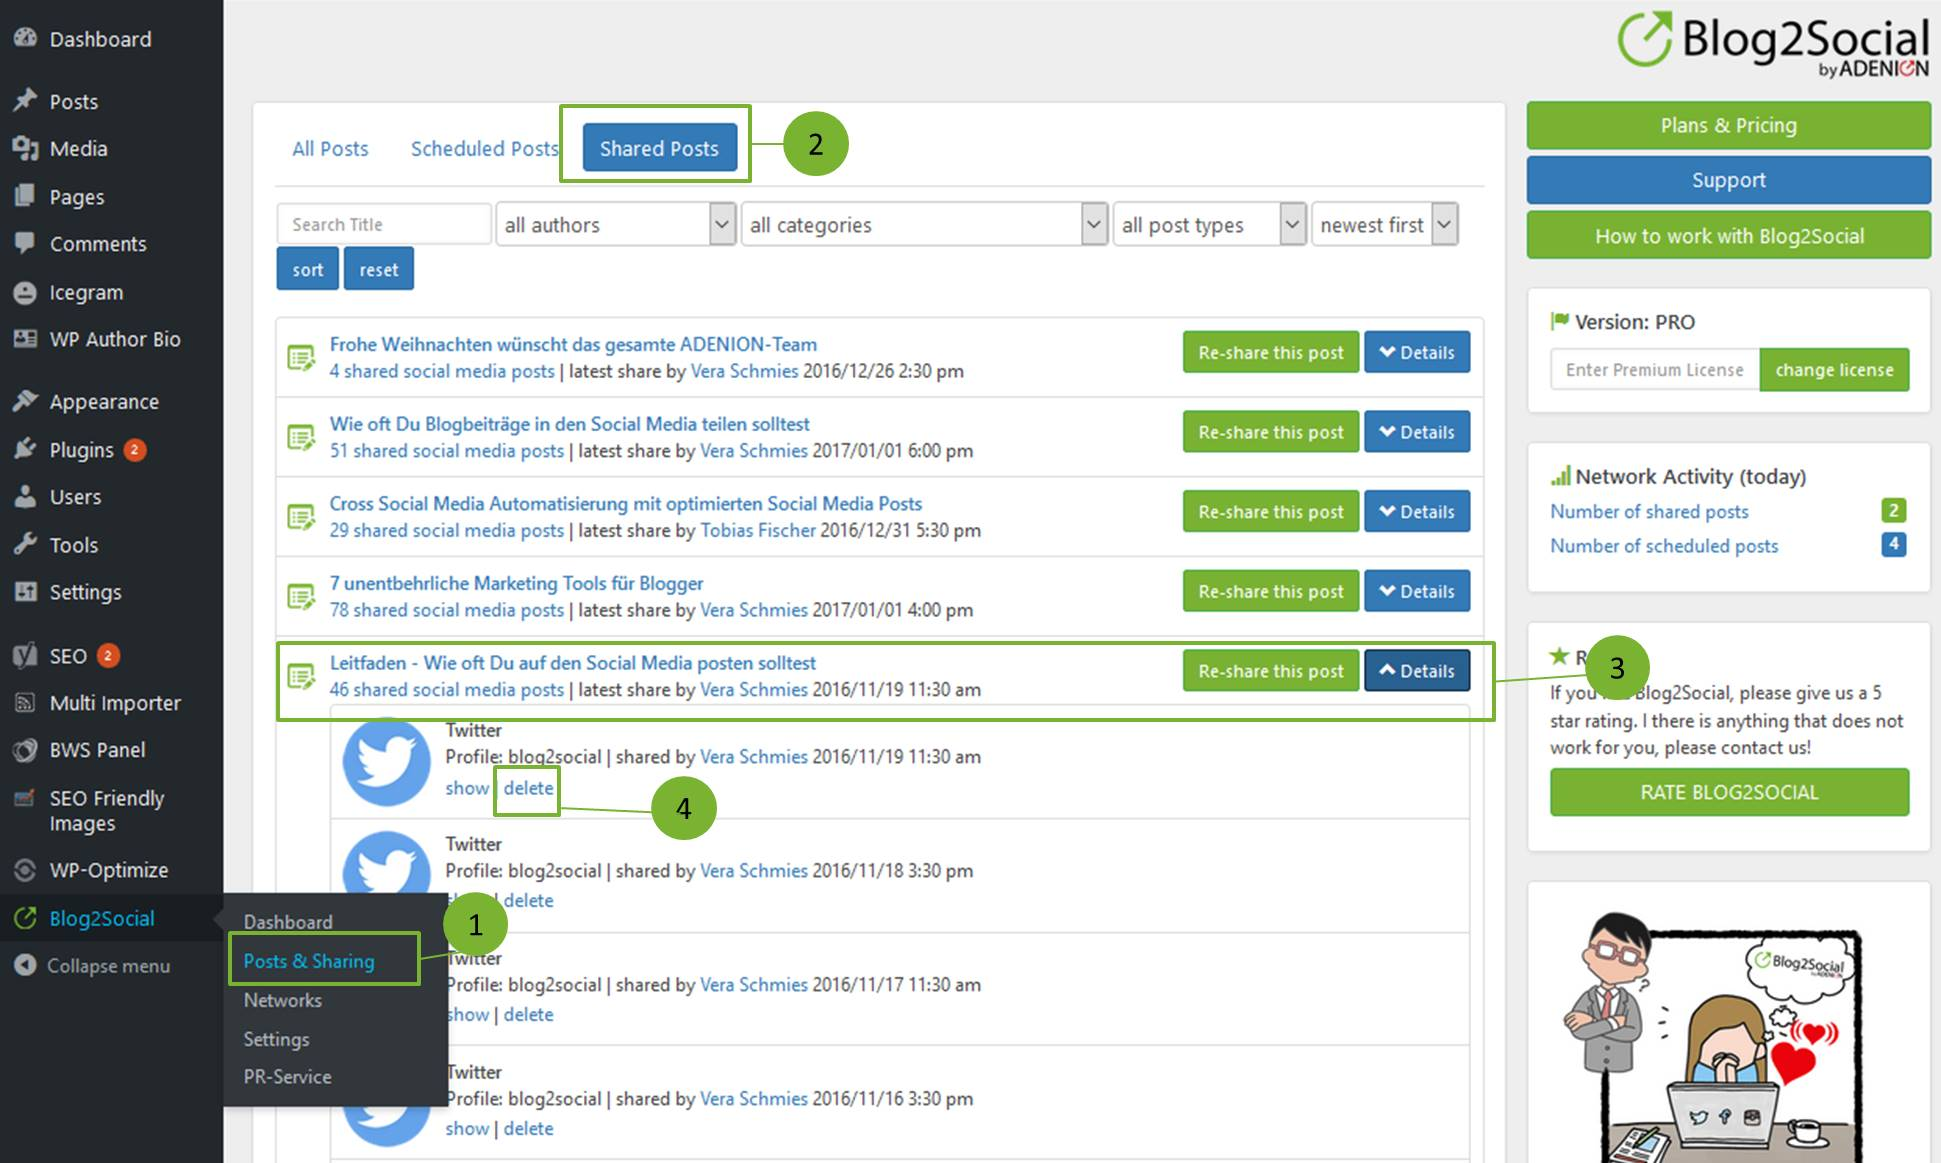 How can I delete already published social media posts in Blog2Social?